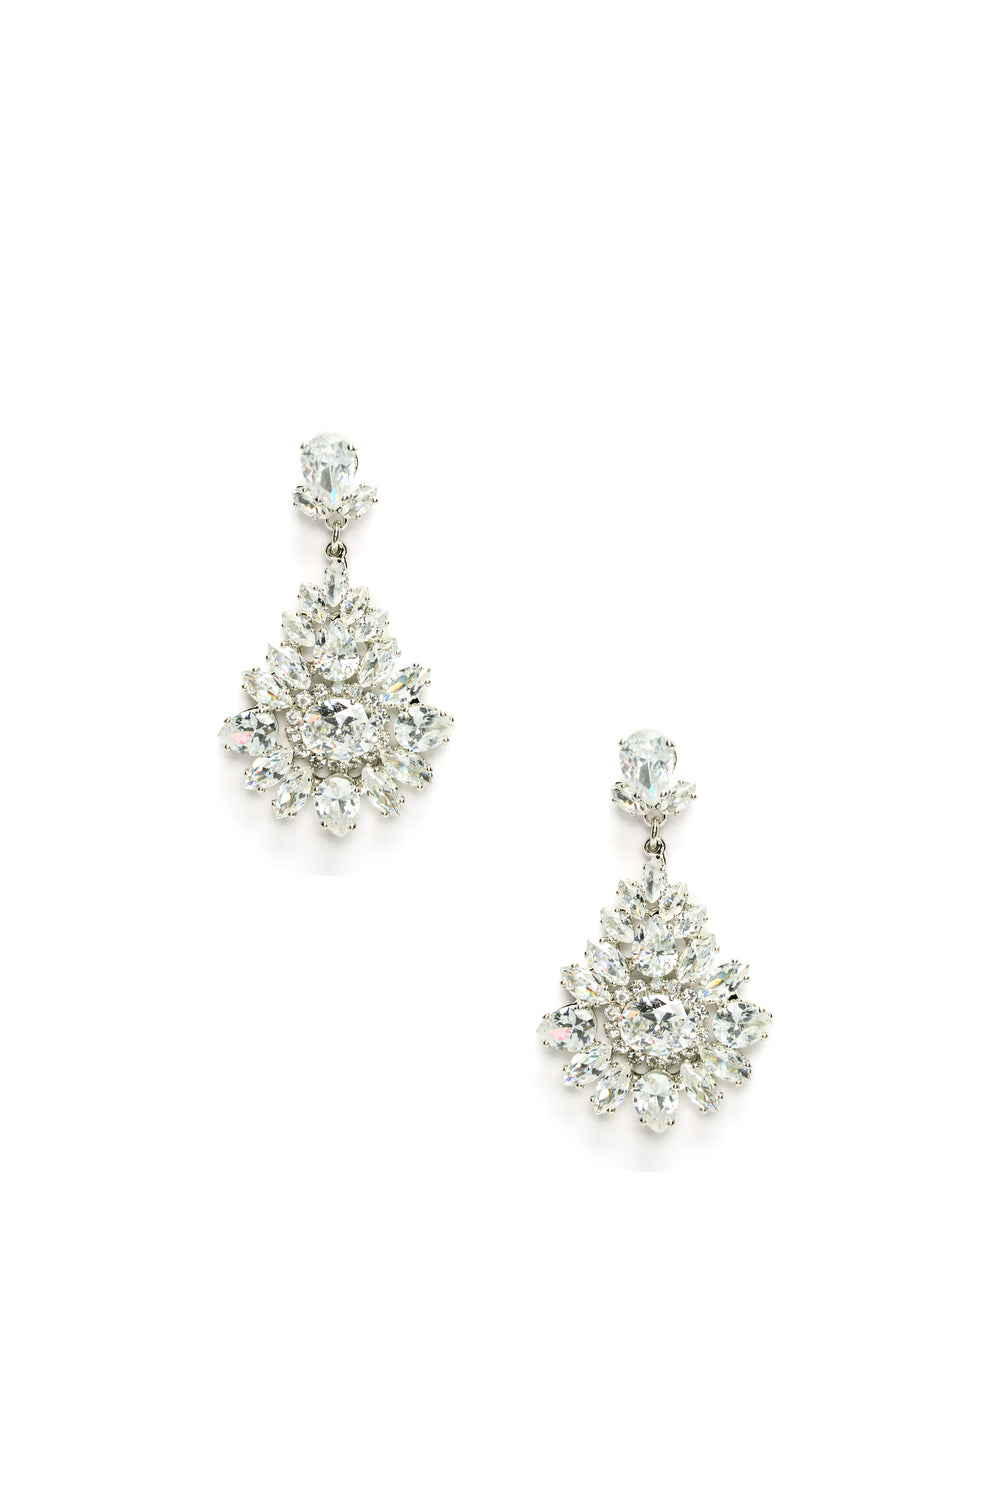 Athena Rhinestone Earrings - Silver